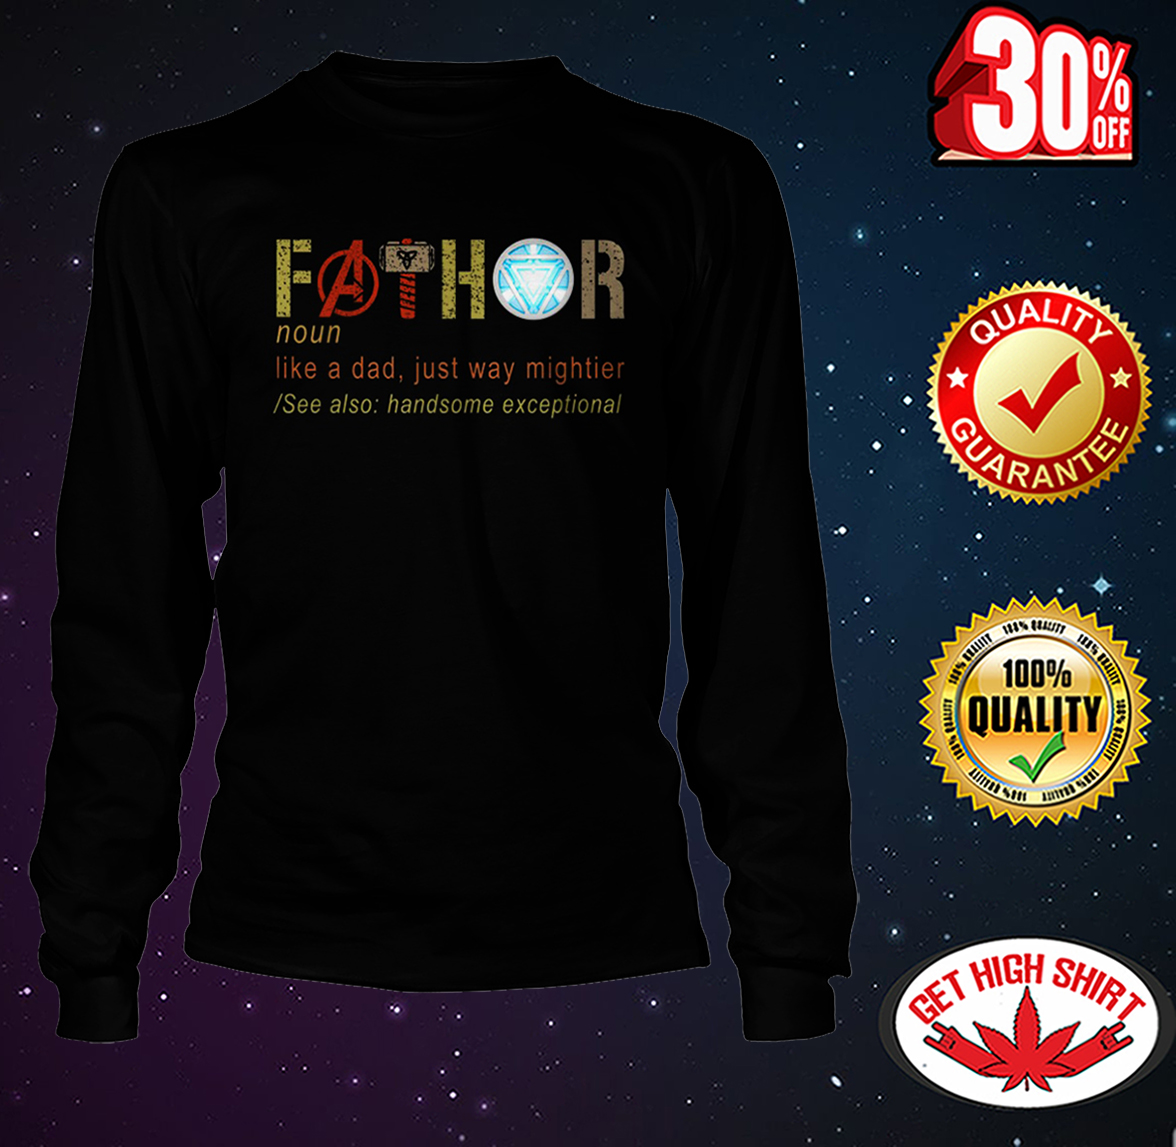 Fathor like a dad just way mightier see aloso handsome exceptional shirt